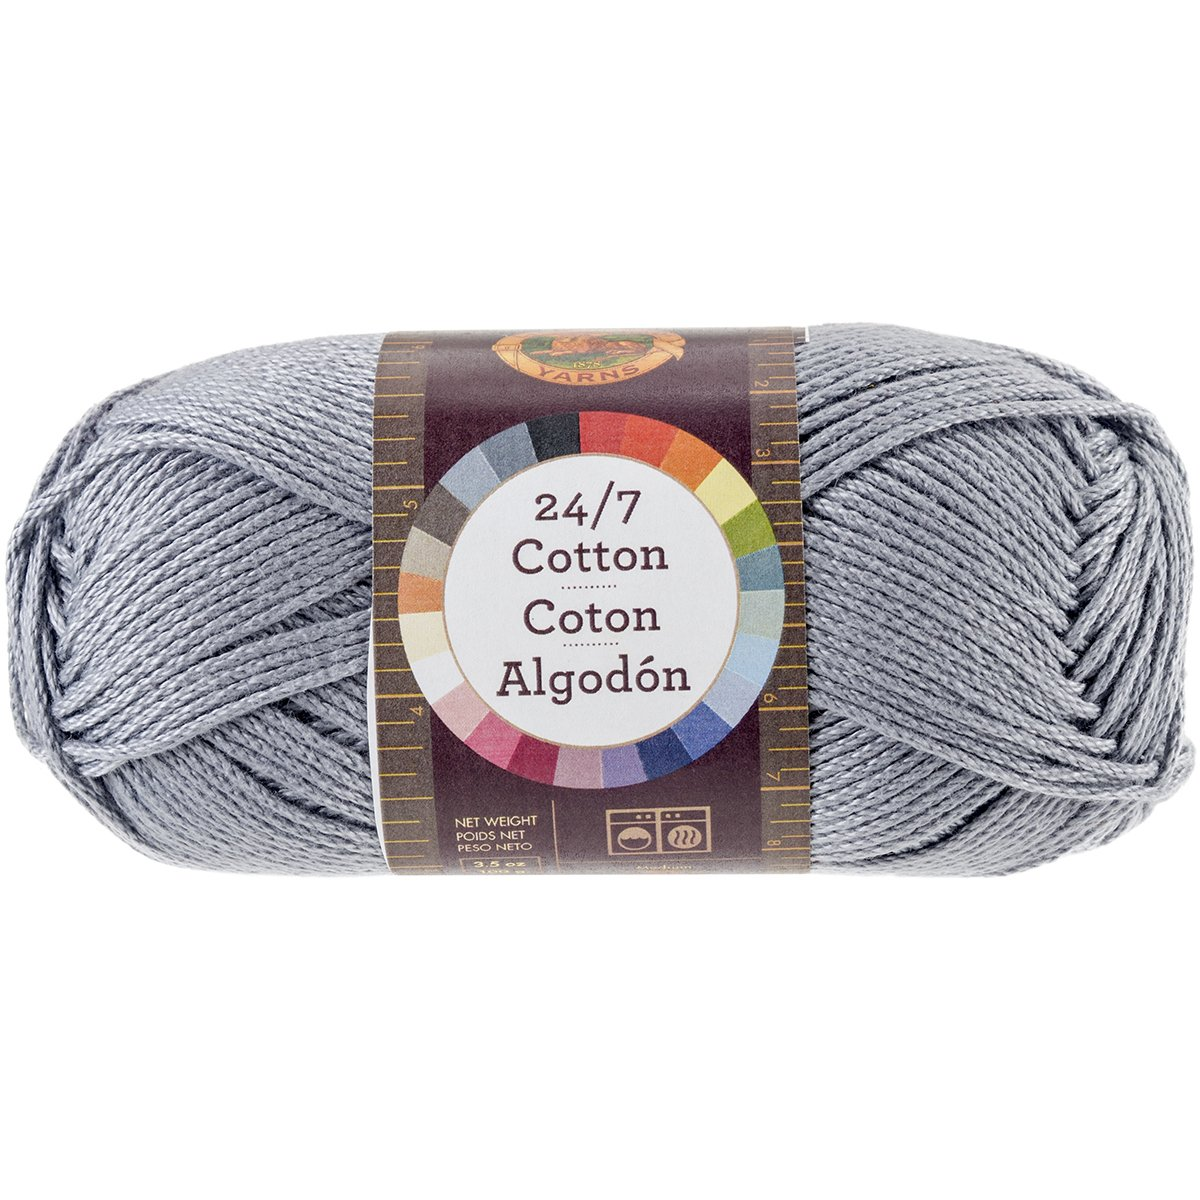 Lion Brand Yarn 761-149 24-7 Cotton Yarn, Silver